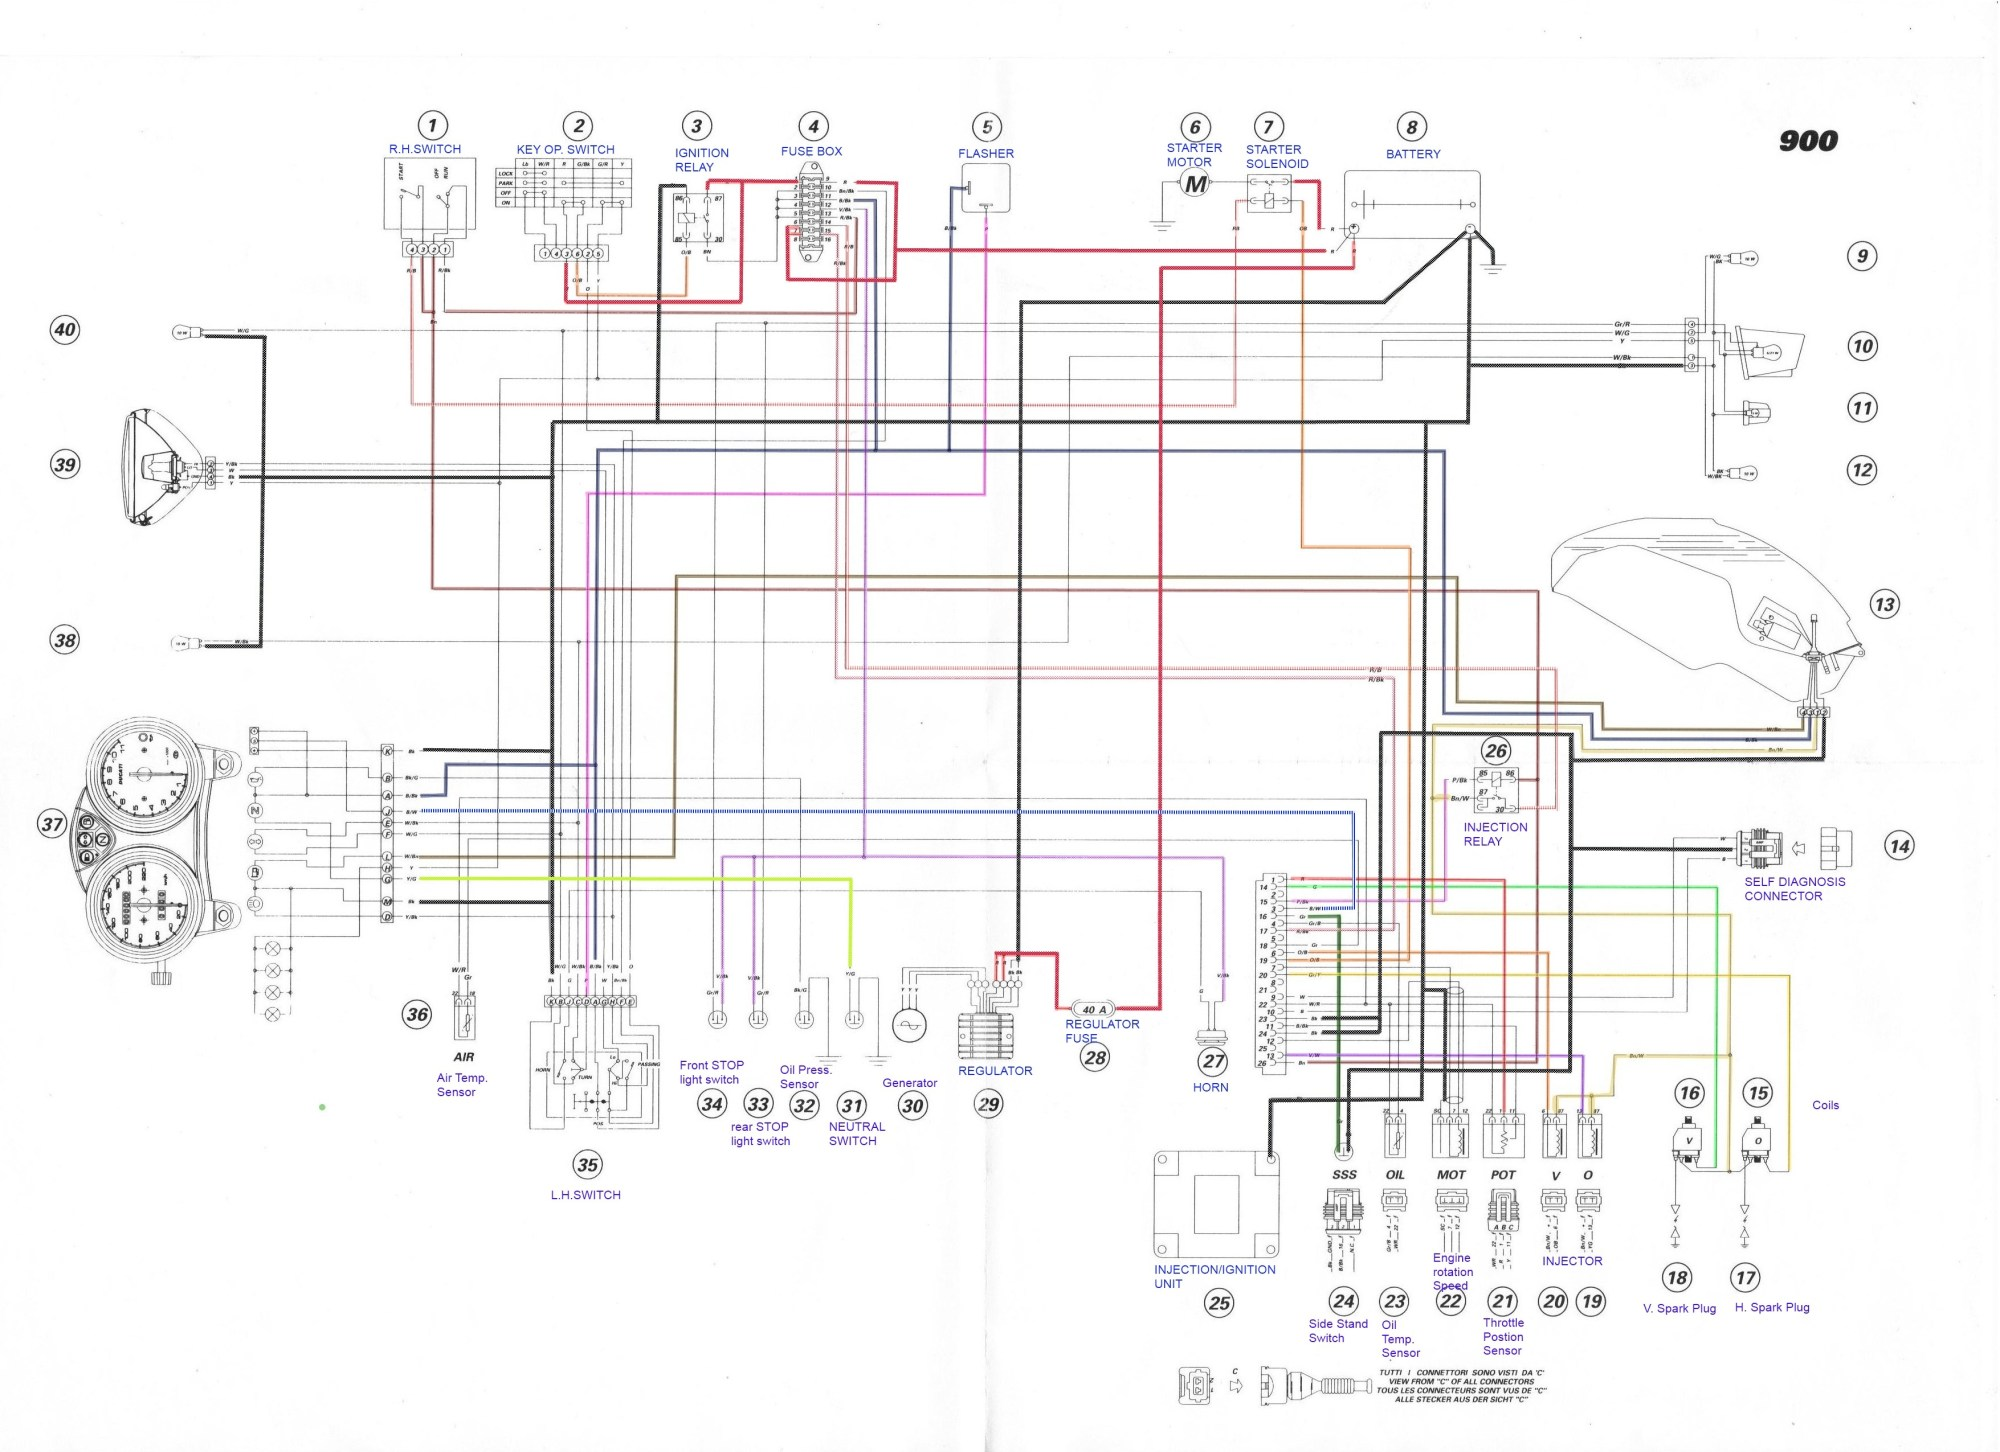 hight resolution of ducati 748 wiring diagram wiring diagram detailed ducati 1098 wiring diagram ducati 748 wiring diagram